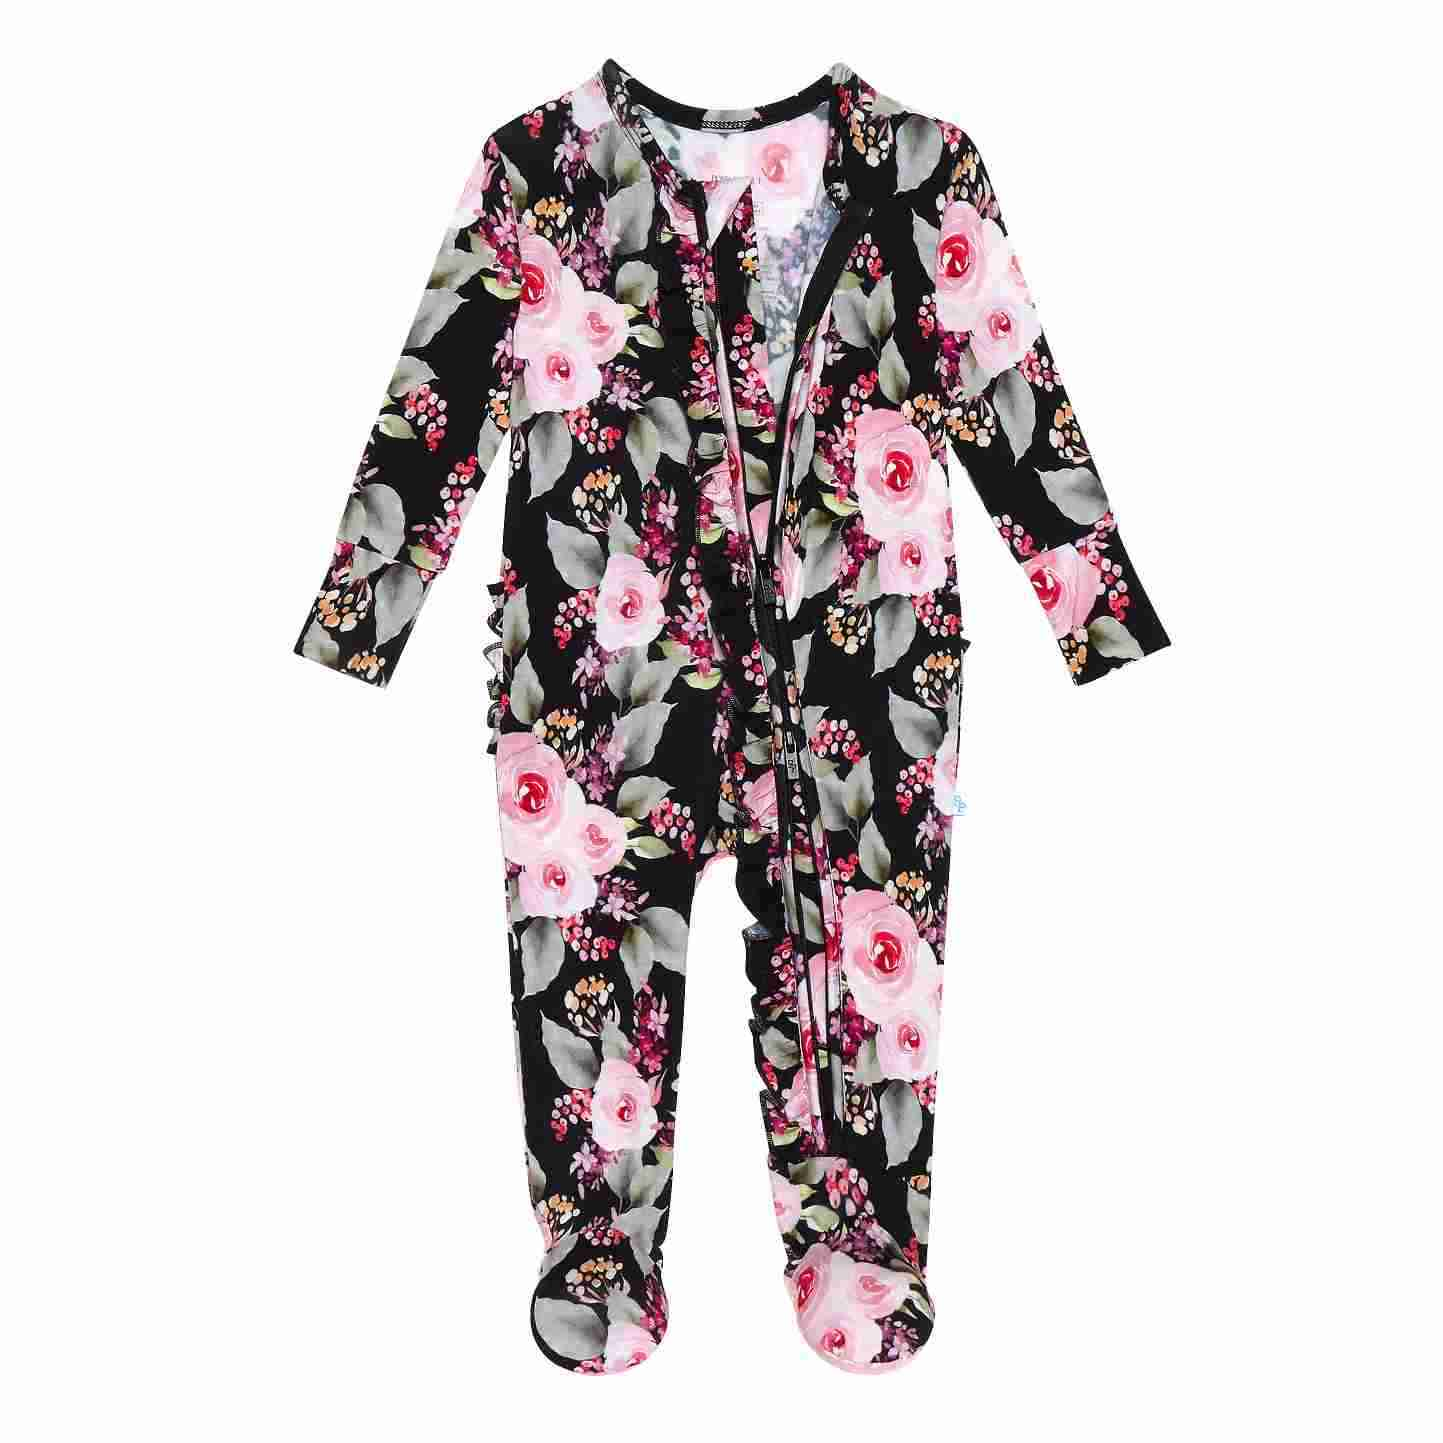 Posh Peanut Milana Ruffled Zippered One Piece Footie